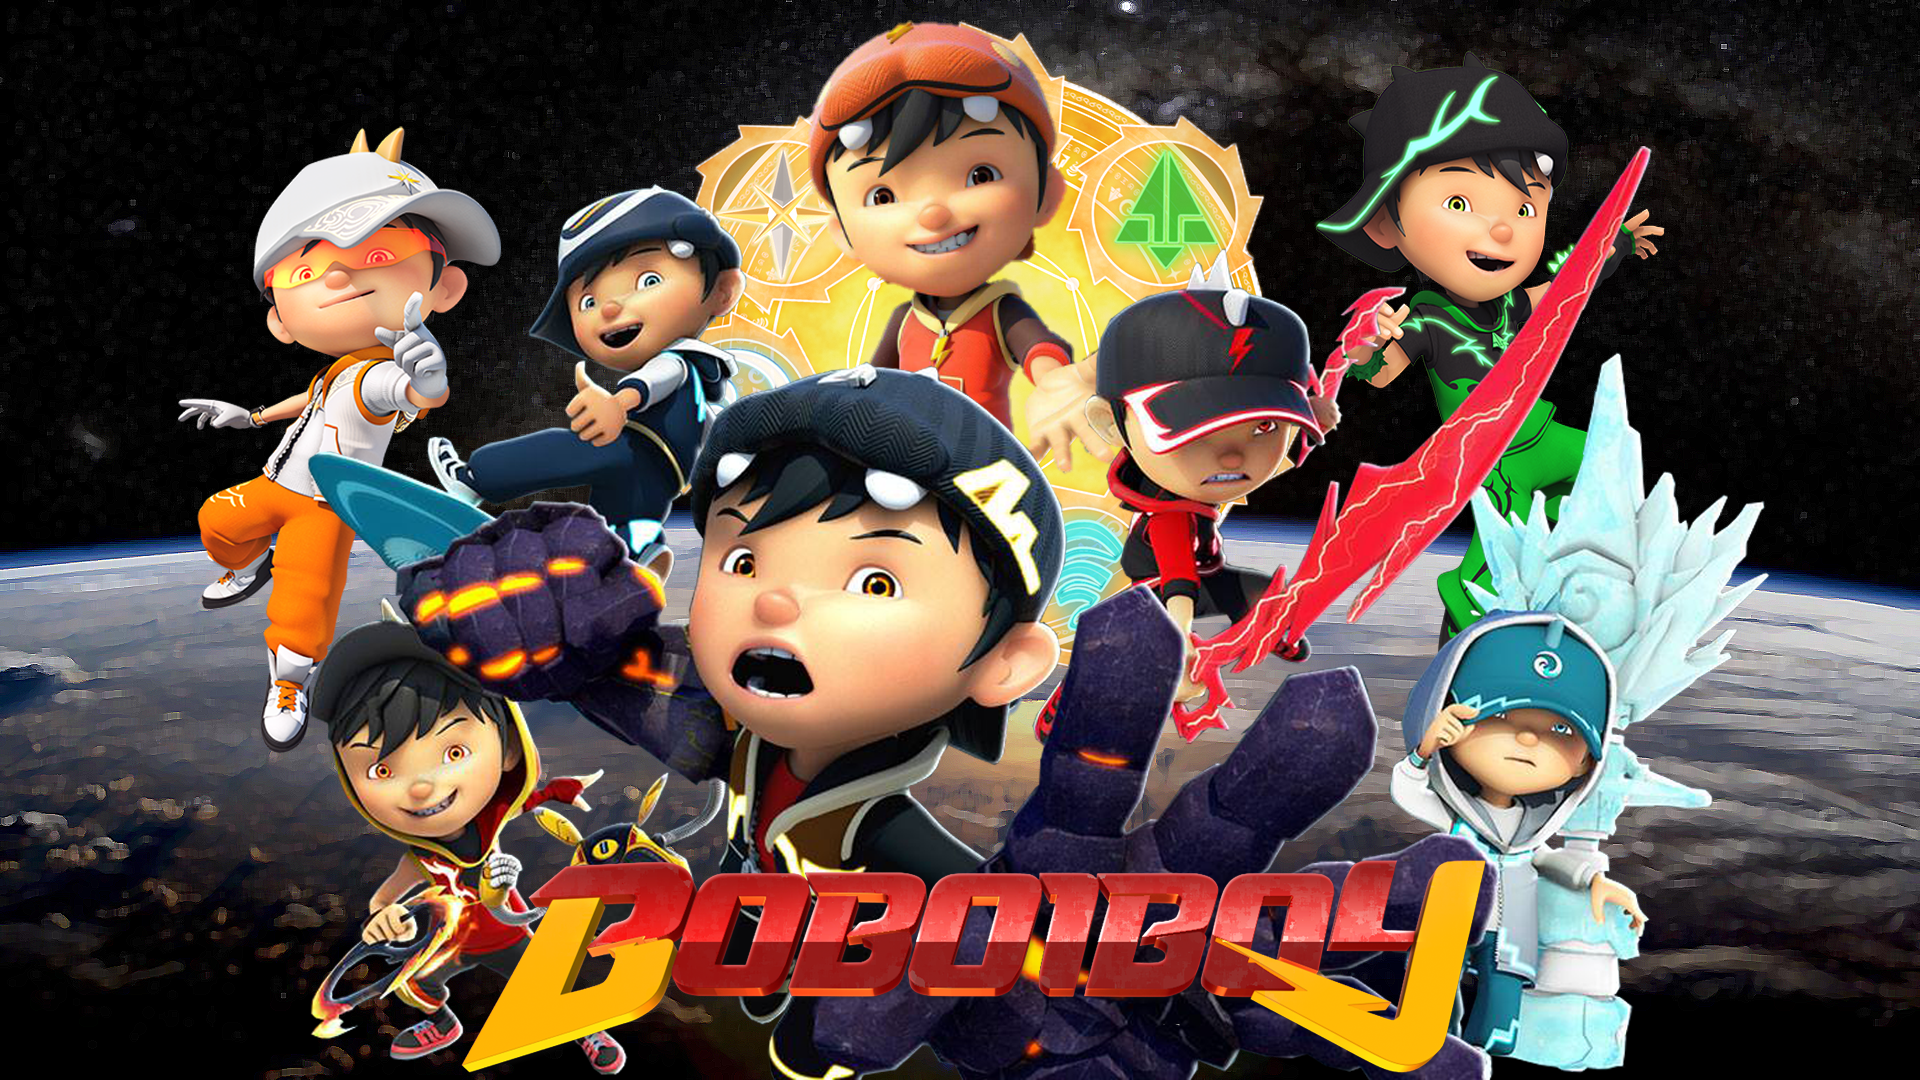 Wallpaper Boboiboy Galaxy Hd